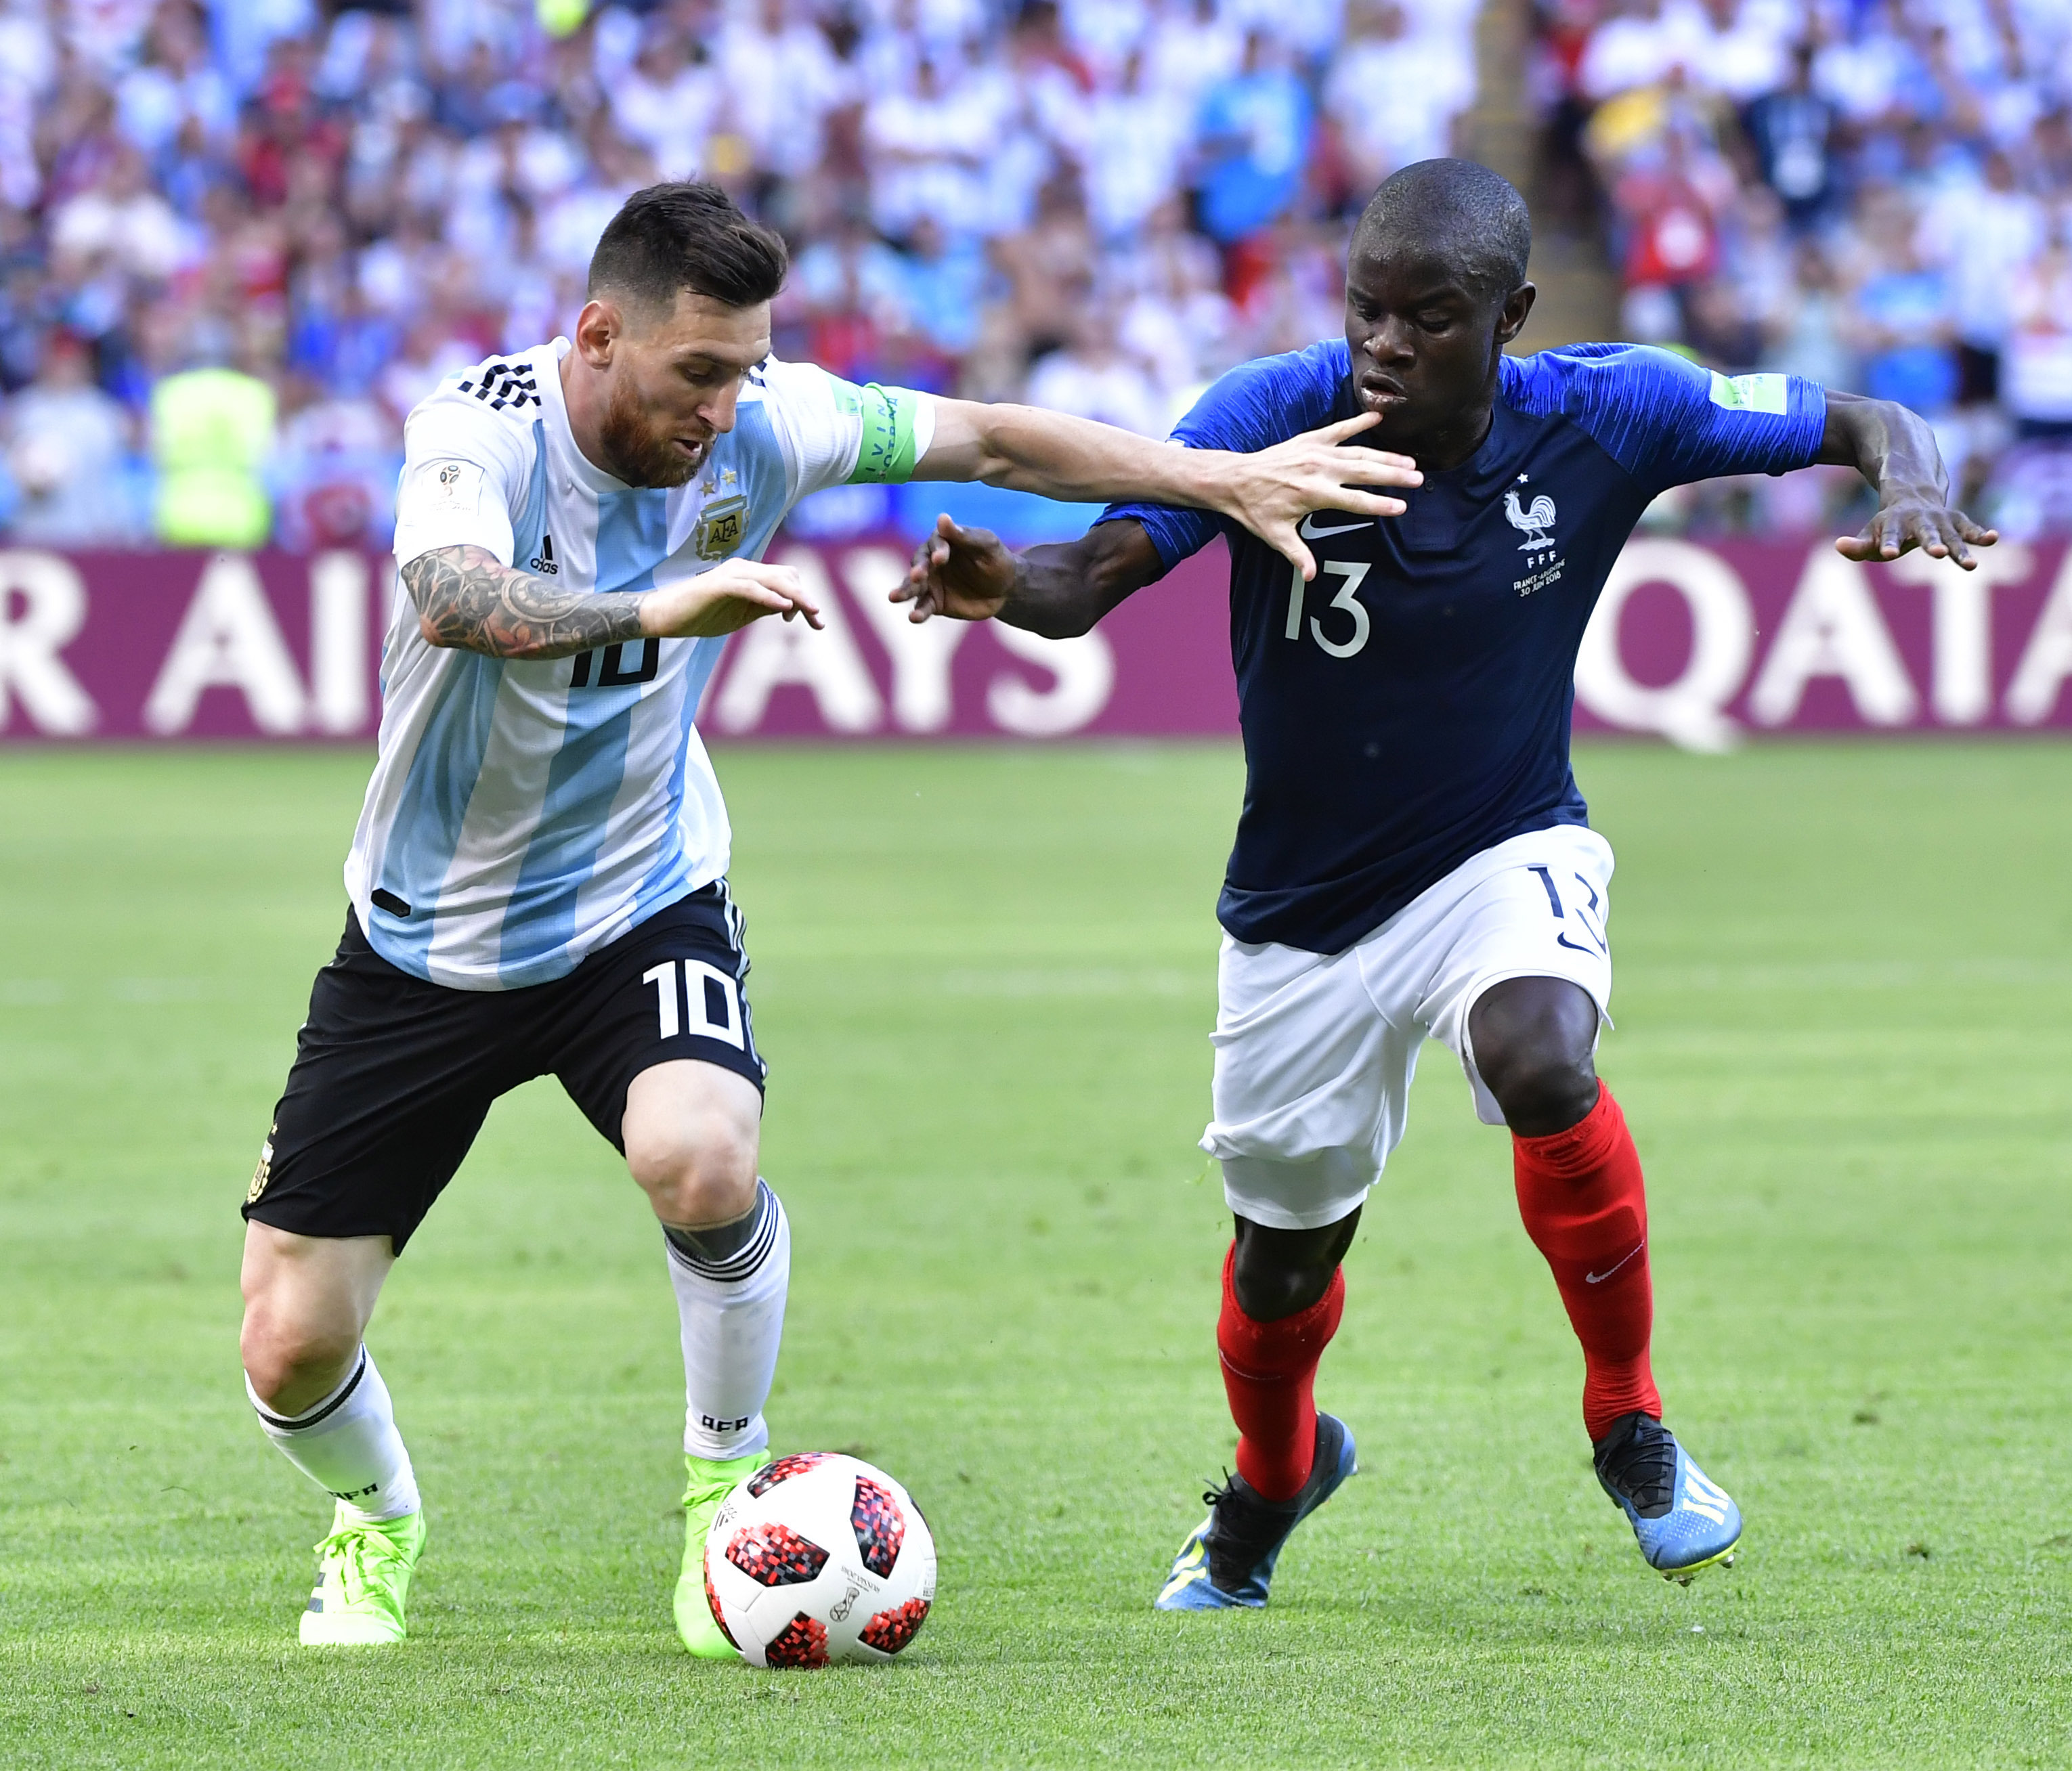 N'Golo Kante and Lionel Messi at FIFA World Cup.